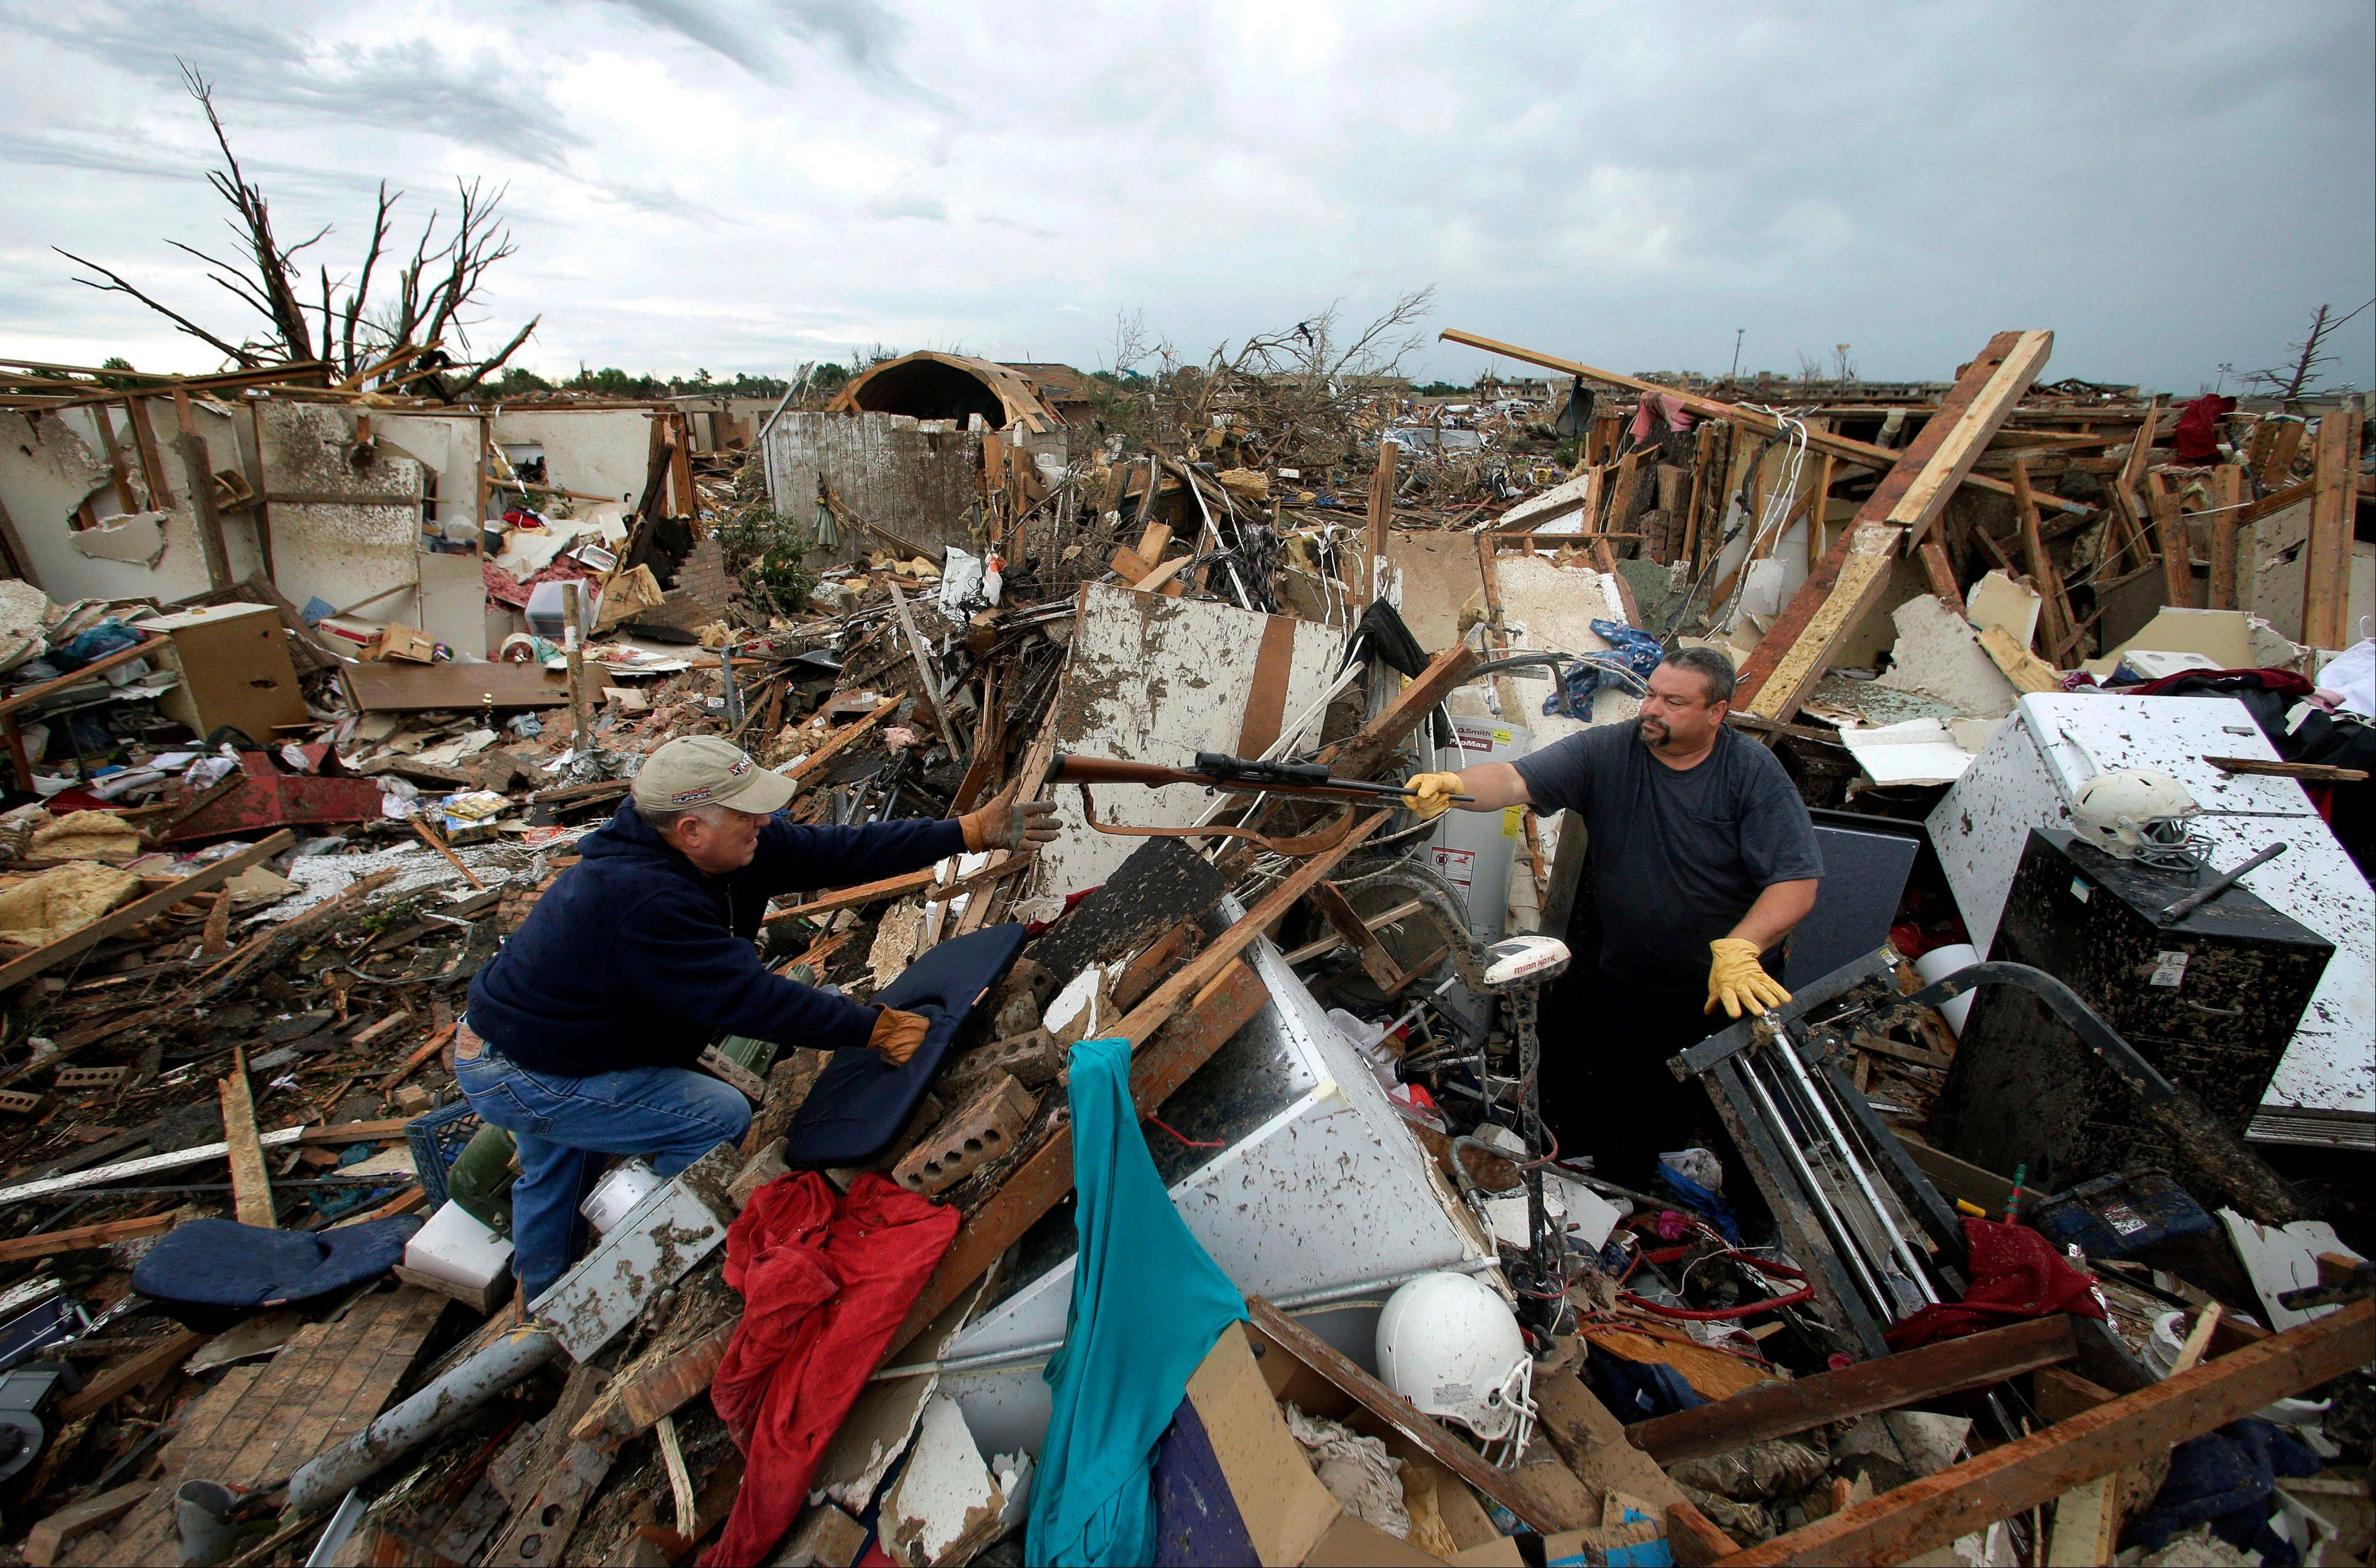 Dalton Sprading, right, hands a gun to his uncle Roger Craft as he salvages items from his tornado-ravaged home Tuesday, May 21, 2013, in Moore, Okla. A huge tornado roared through the Oklahoma City suburb Monday, flattening an entire neighborhoods and destroying an elementary school with a direct blow as children and teachers huddled against winds.